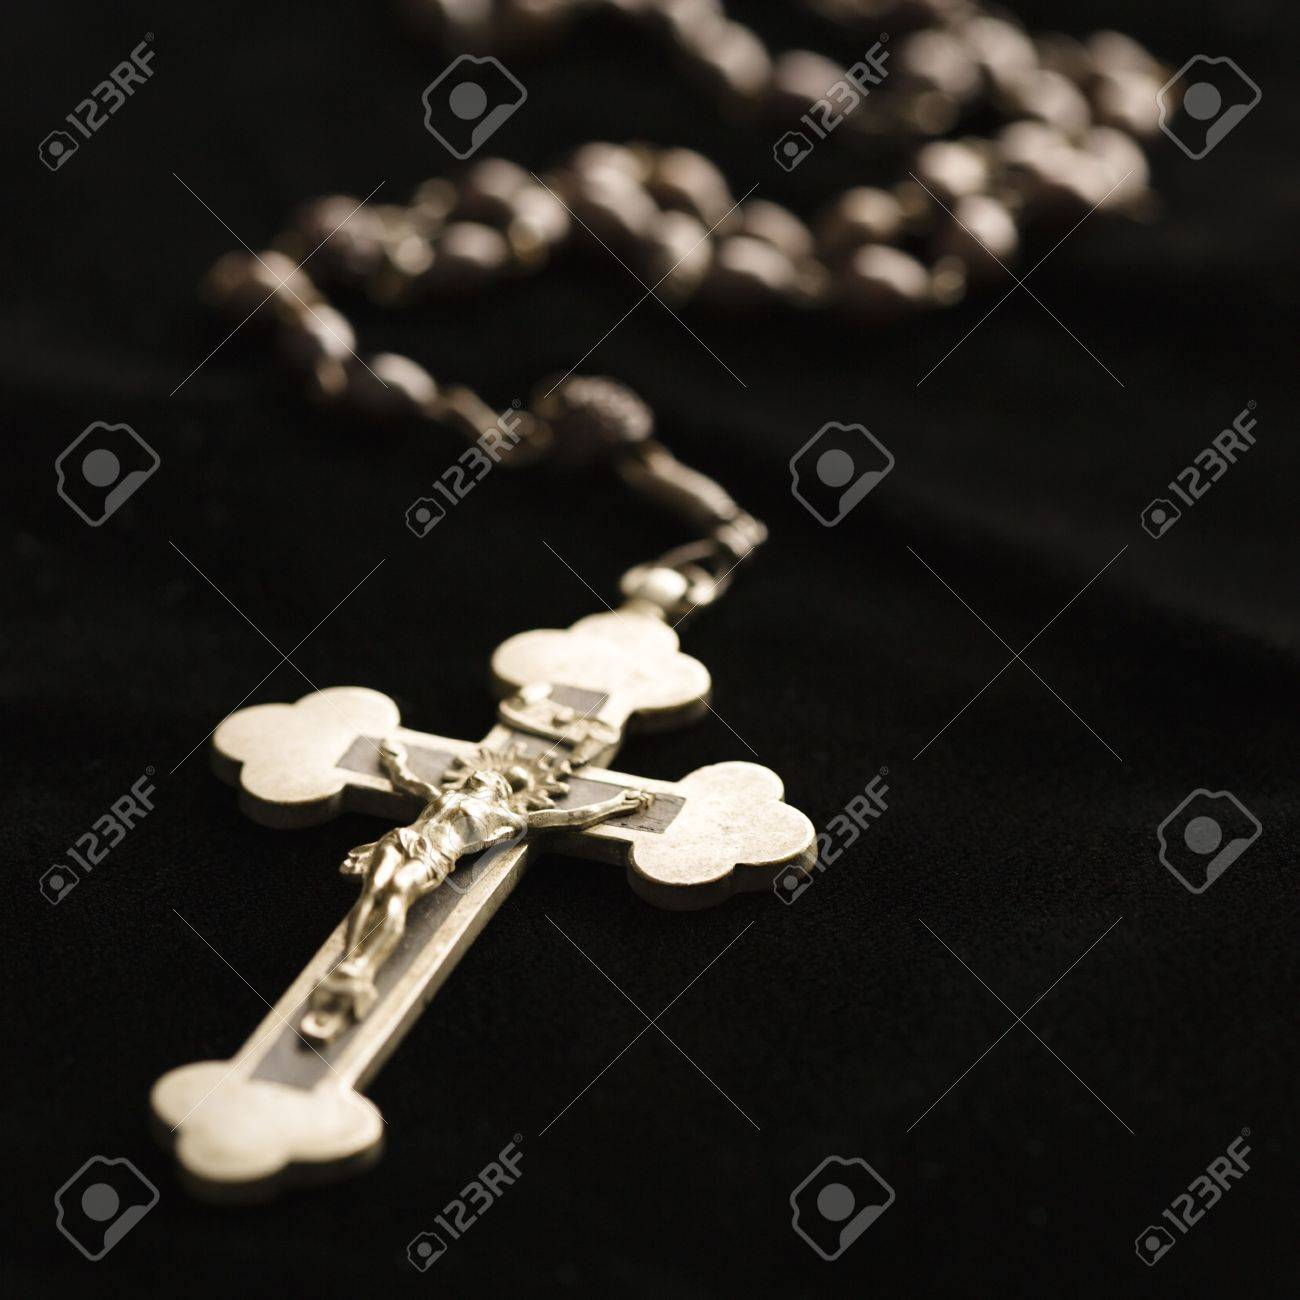 Christian rosary beads with crucifix on black background. Stock Photo - 2043808